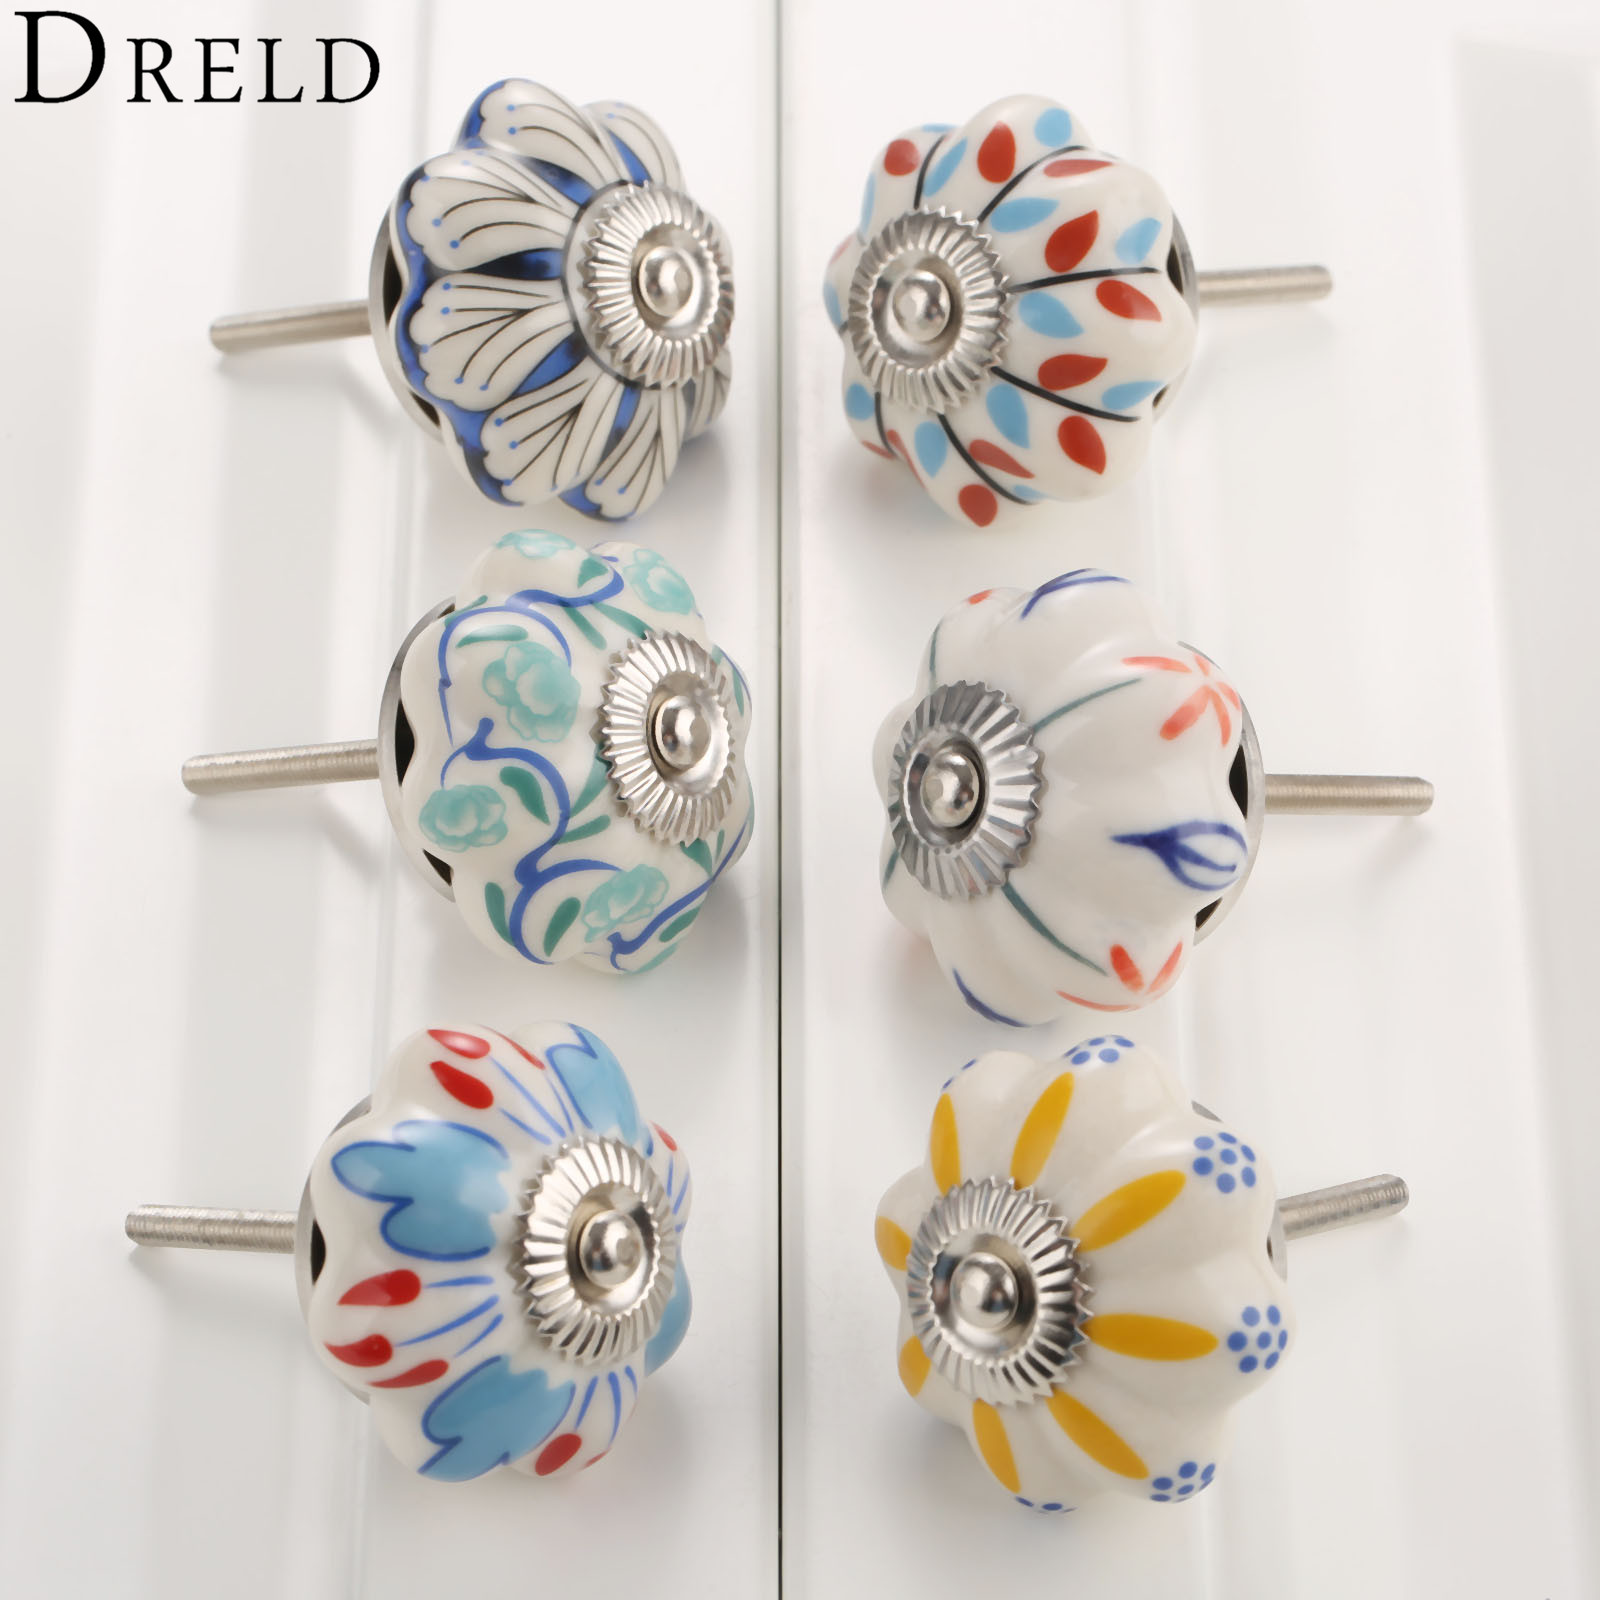 DRELD 40mm Furniture Handle Ceramic Drawer Cabinet Knobs and Handles Knobs Door Cupboard Kitchen Pull Handles Furniture Hardware kak pumpkin ceramic handles 40mm drawer knobs cupboard door handles single hole cabinet handles with screws furniture handles